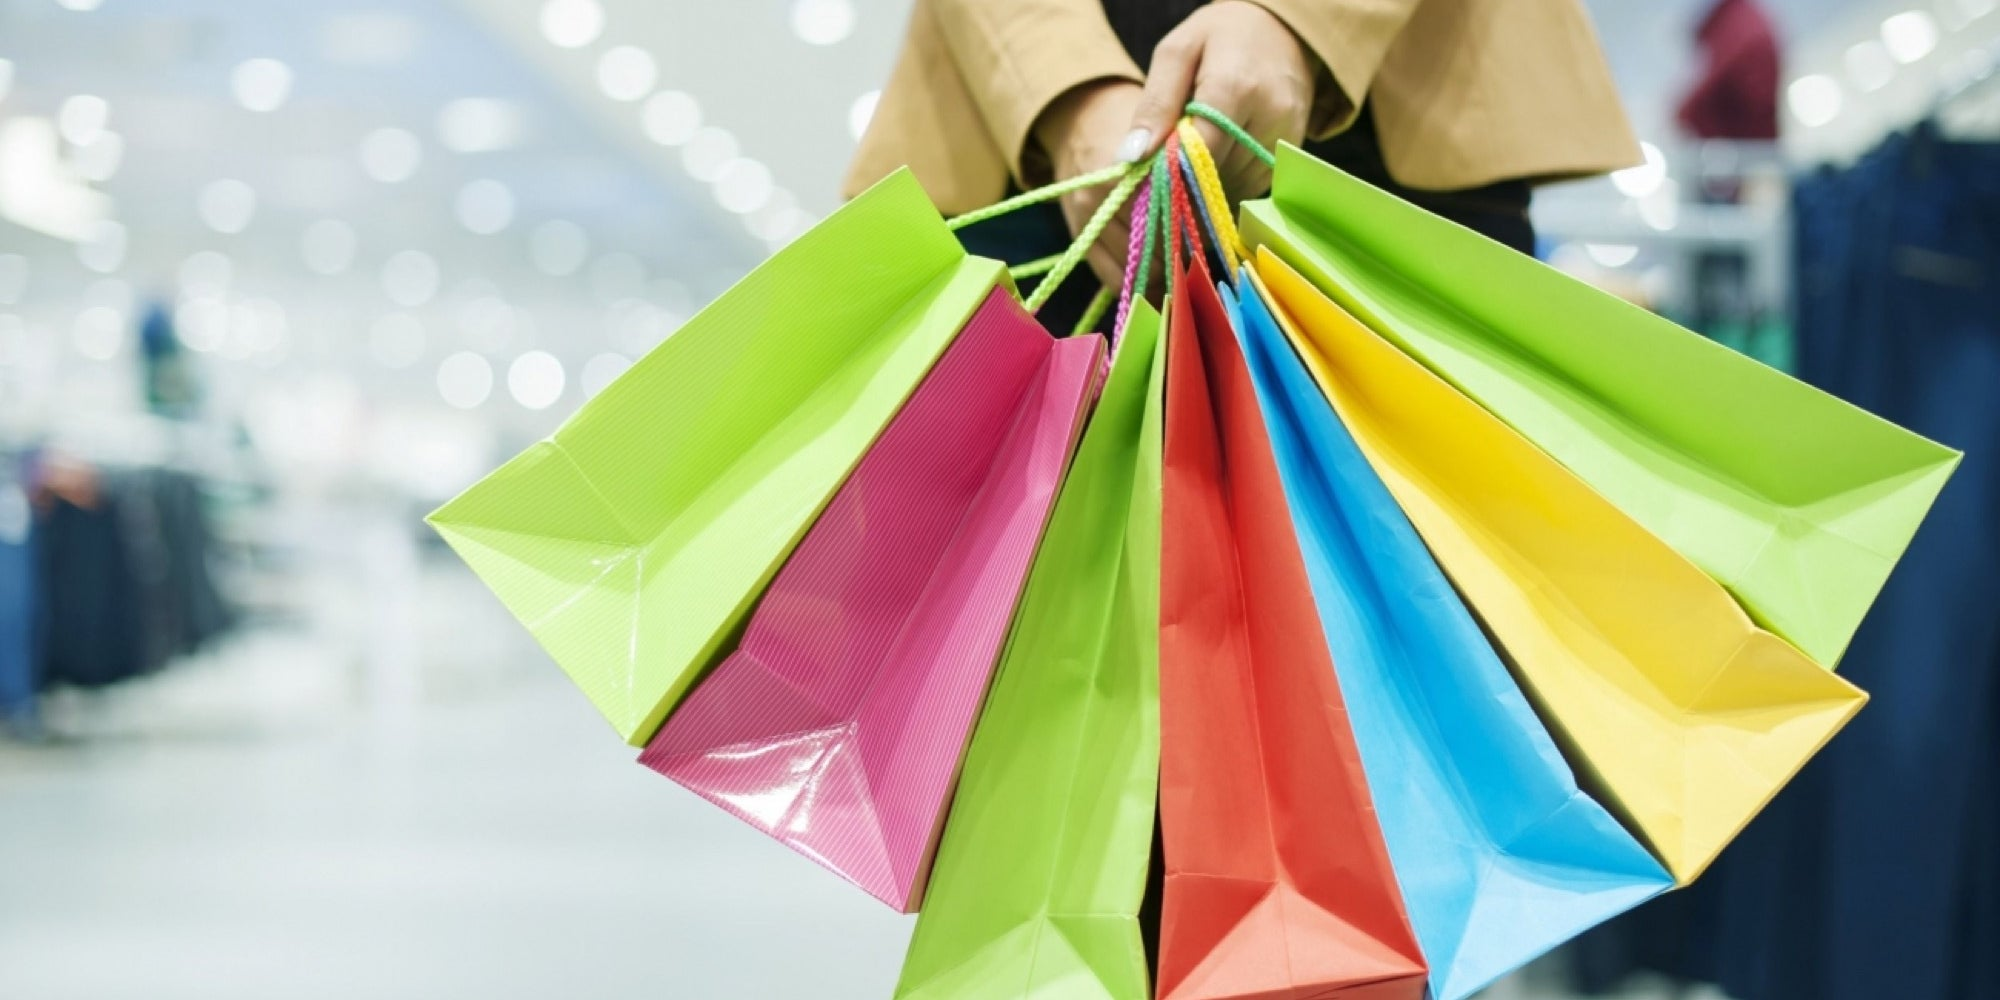 Get to know your retailers now